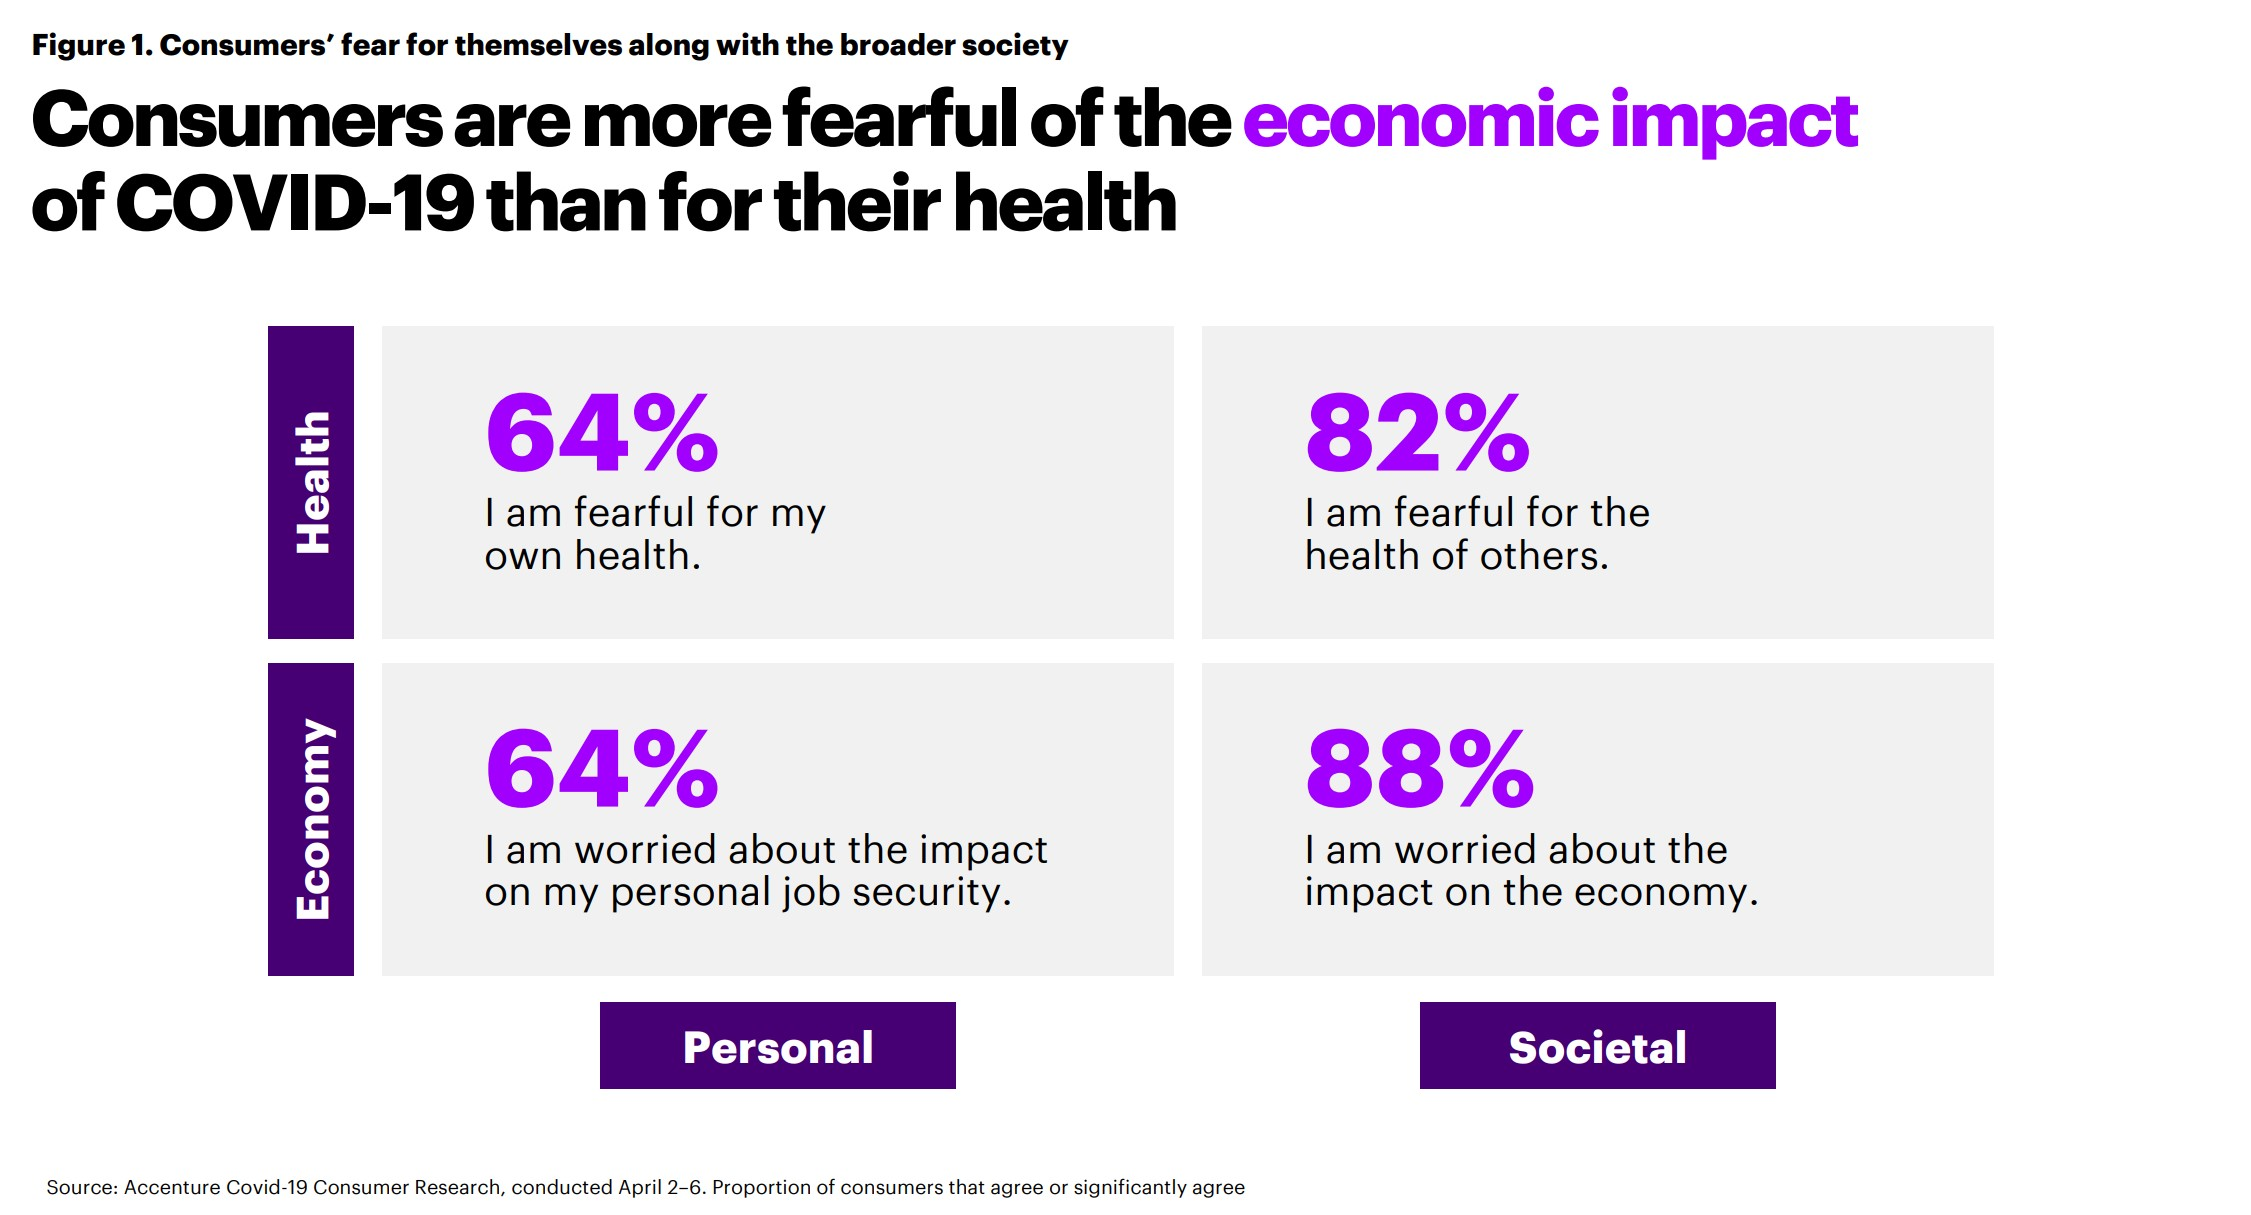 Consumers are more fearful of the economic impact of COVID-19 than for their health